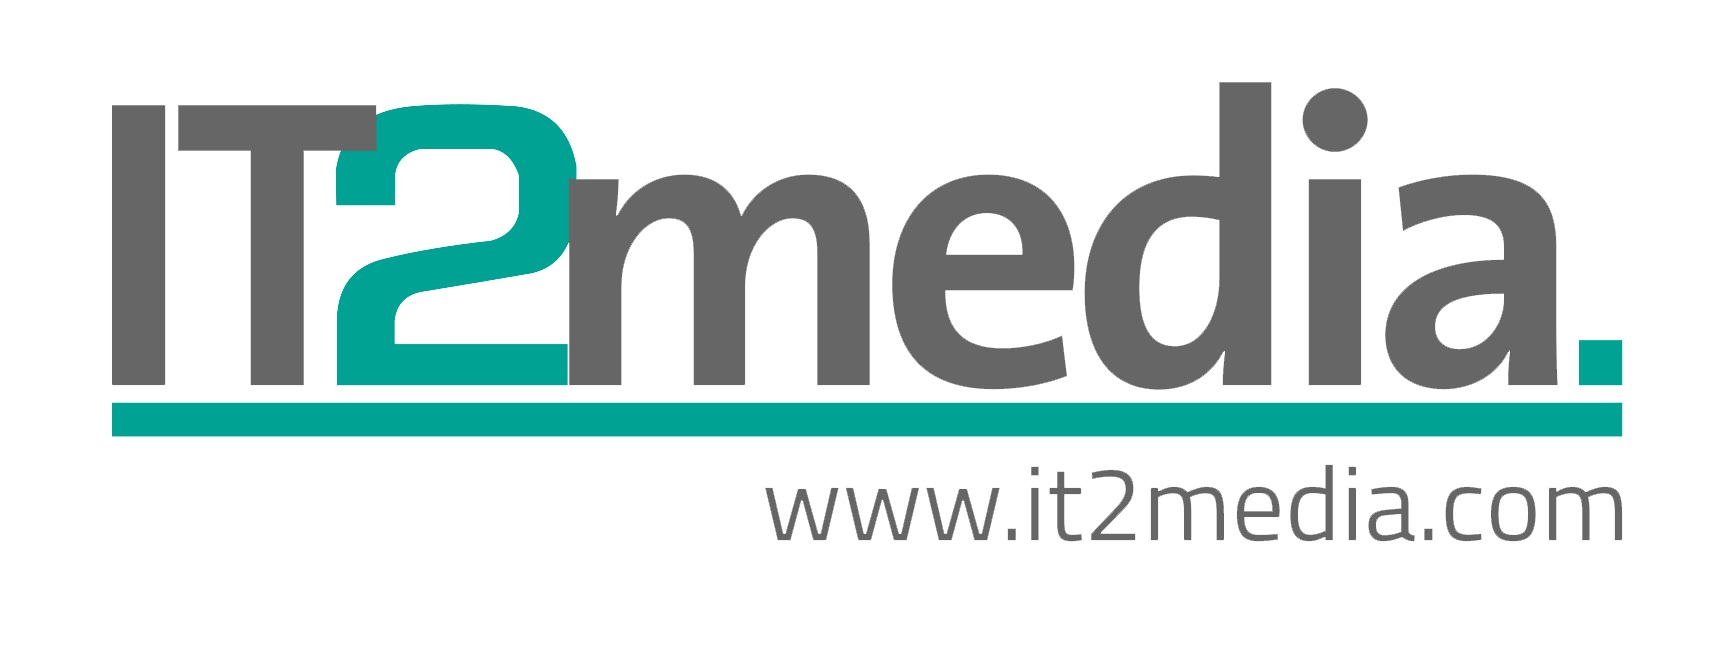 IT2media GmbH & Co. KG